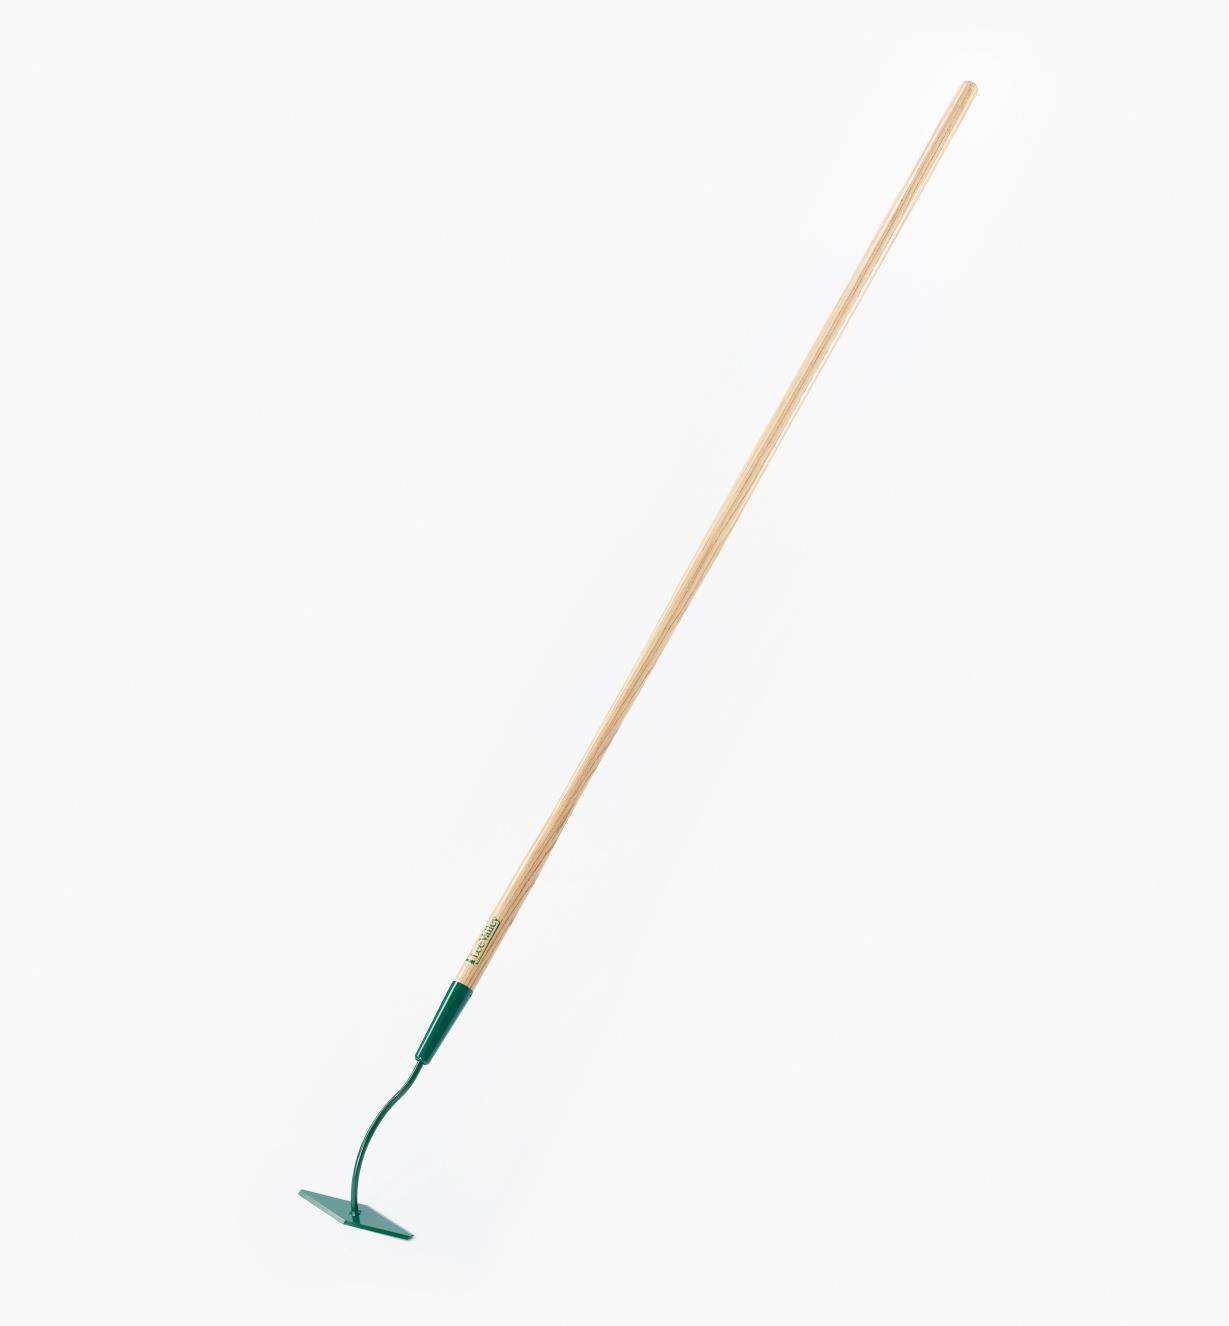 PD347 - Lee Valley Diamond Shuffle Hoe